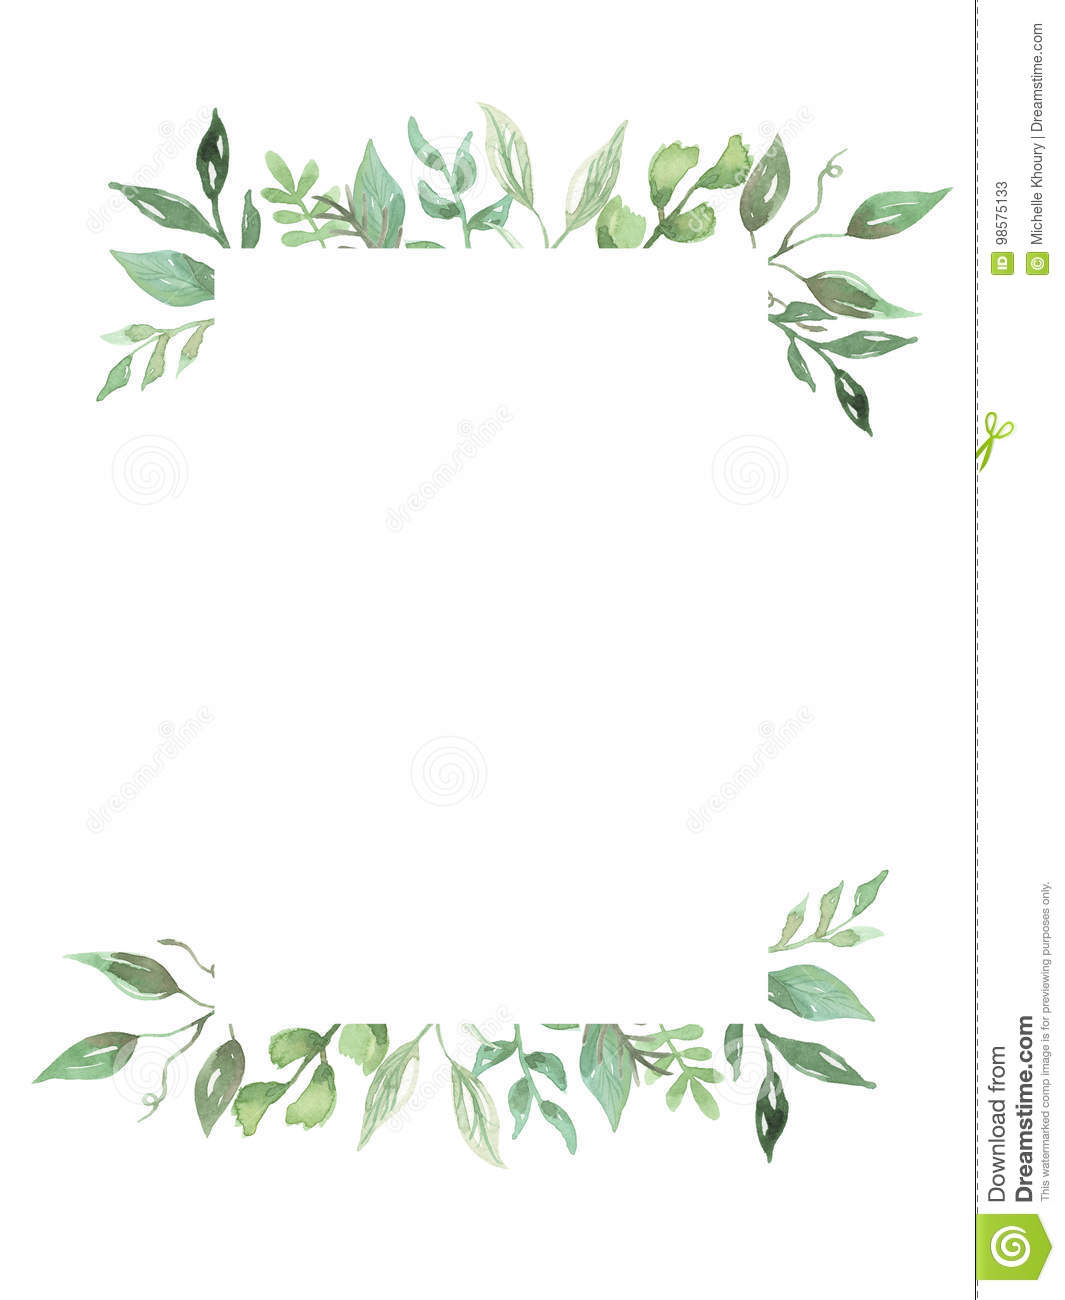 Watercolor Greenery Leaves Hand Painted Frame Wedding Foliage Wreath